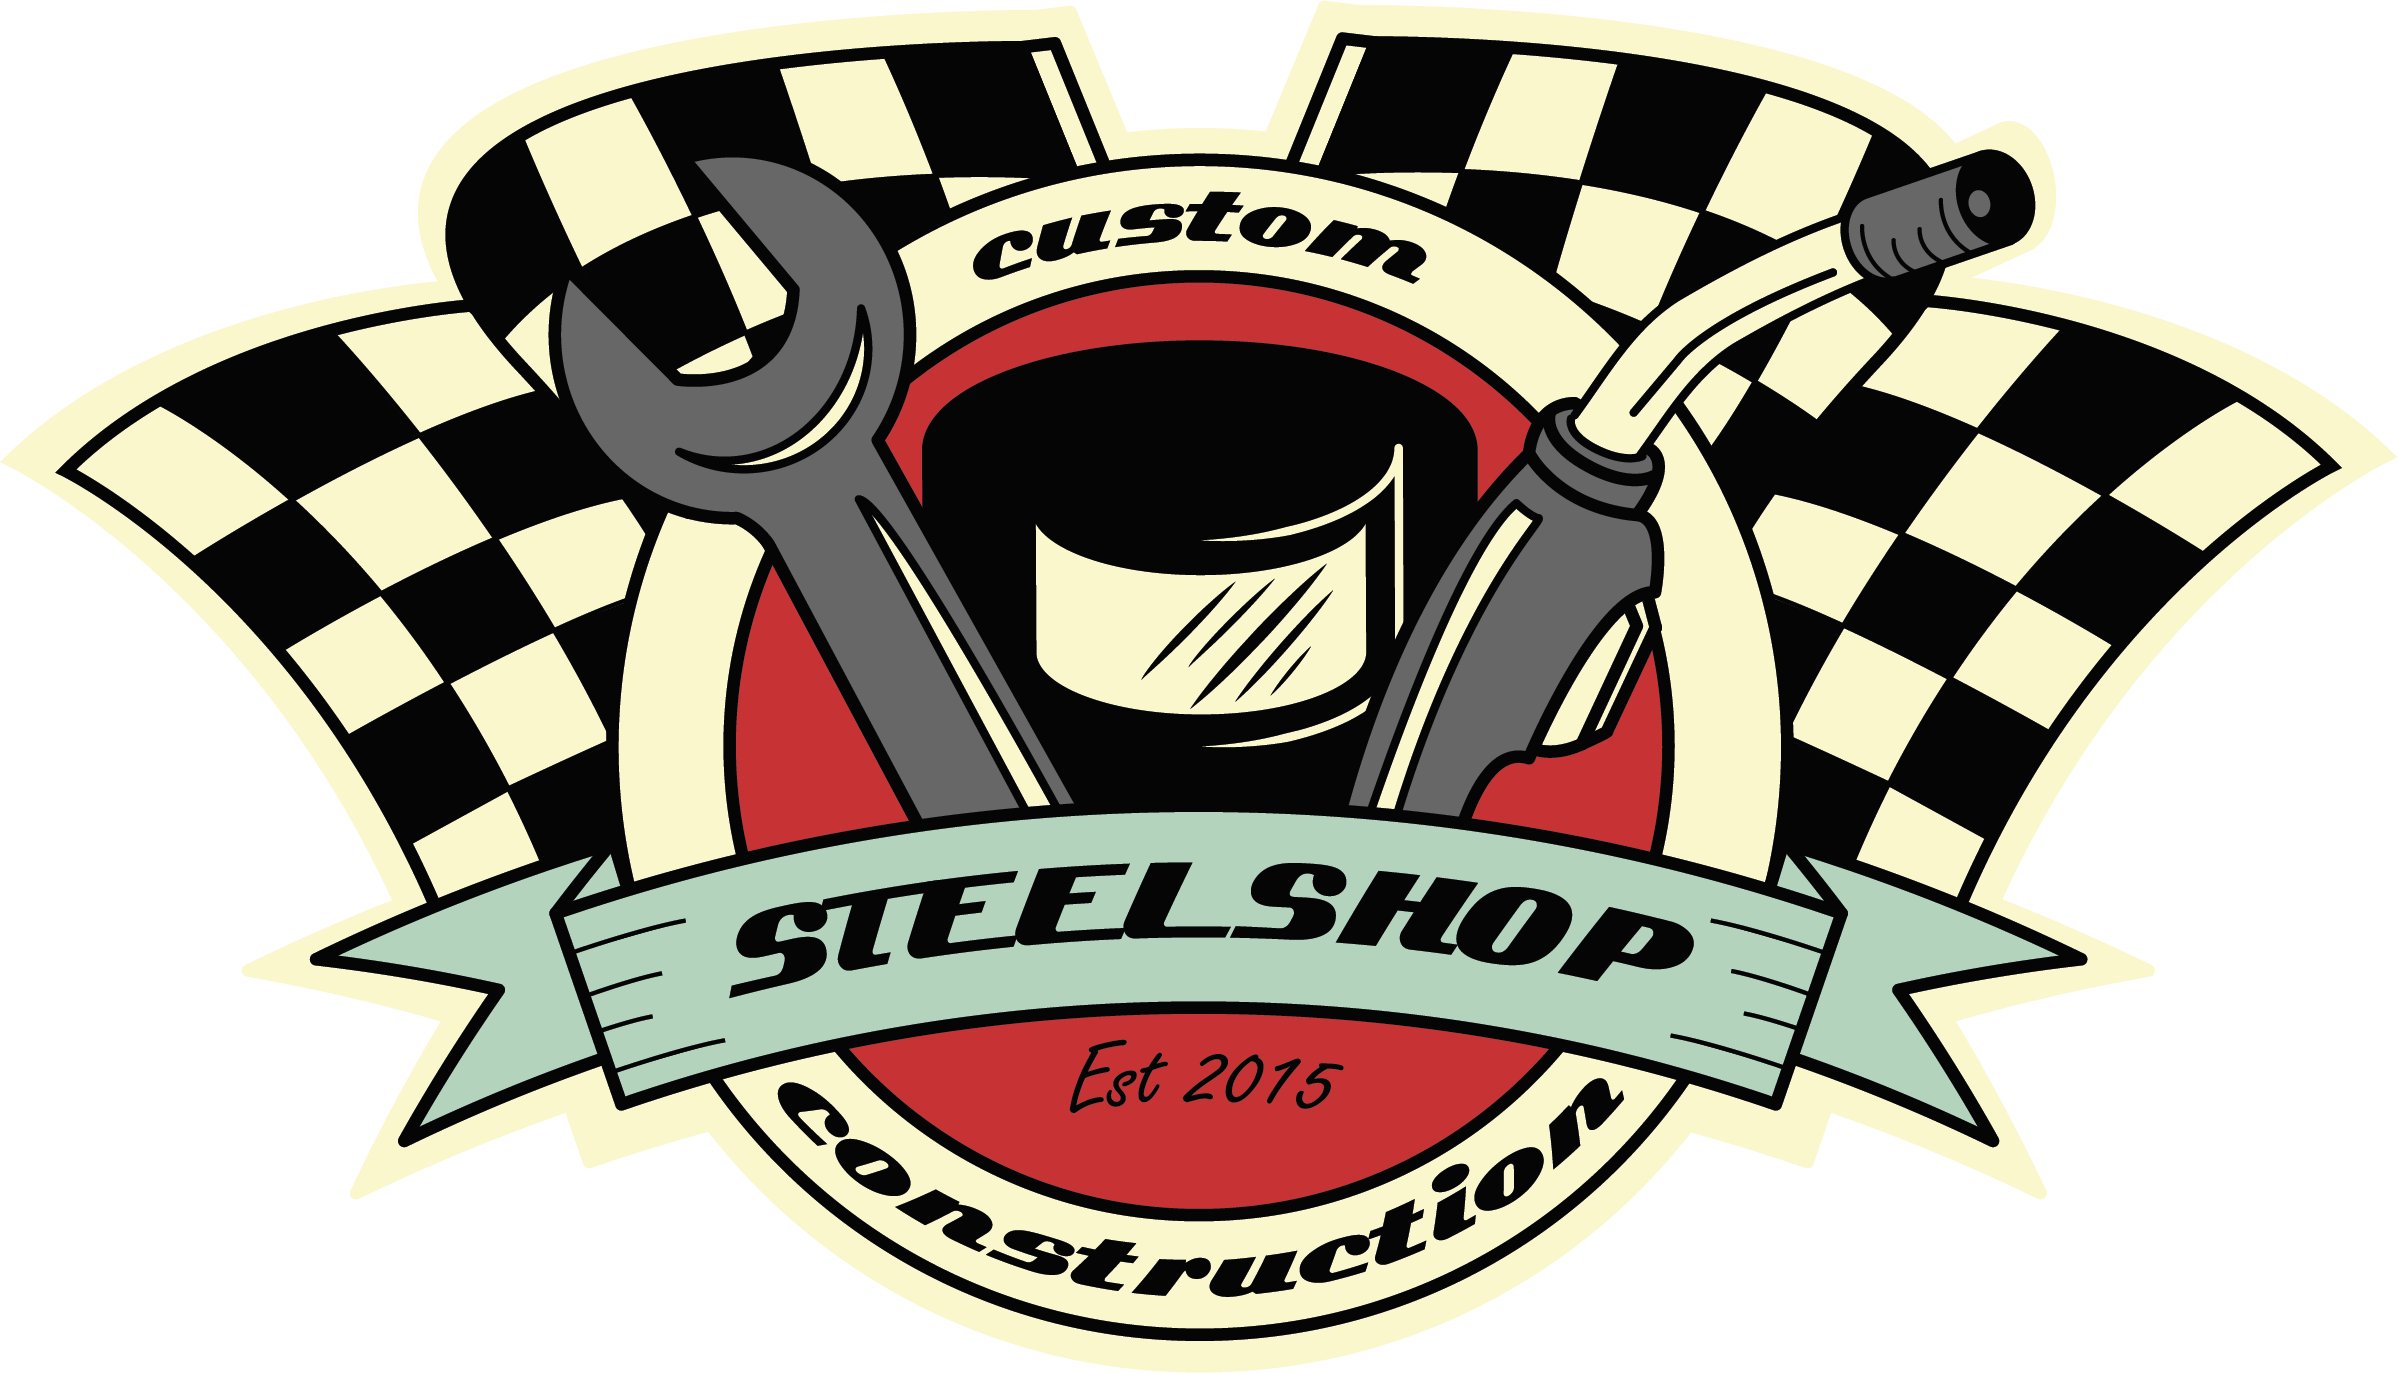 Steelshop Custom and Construction